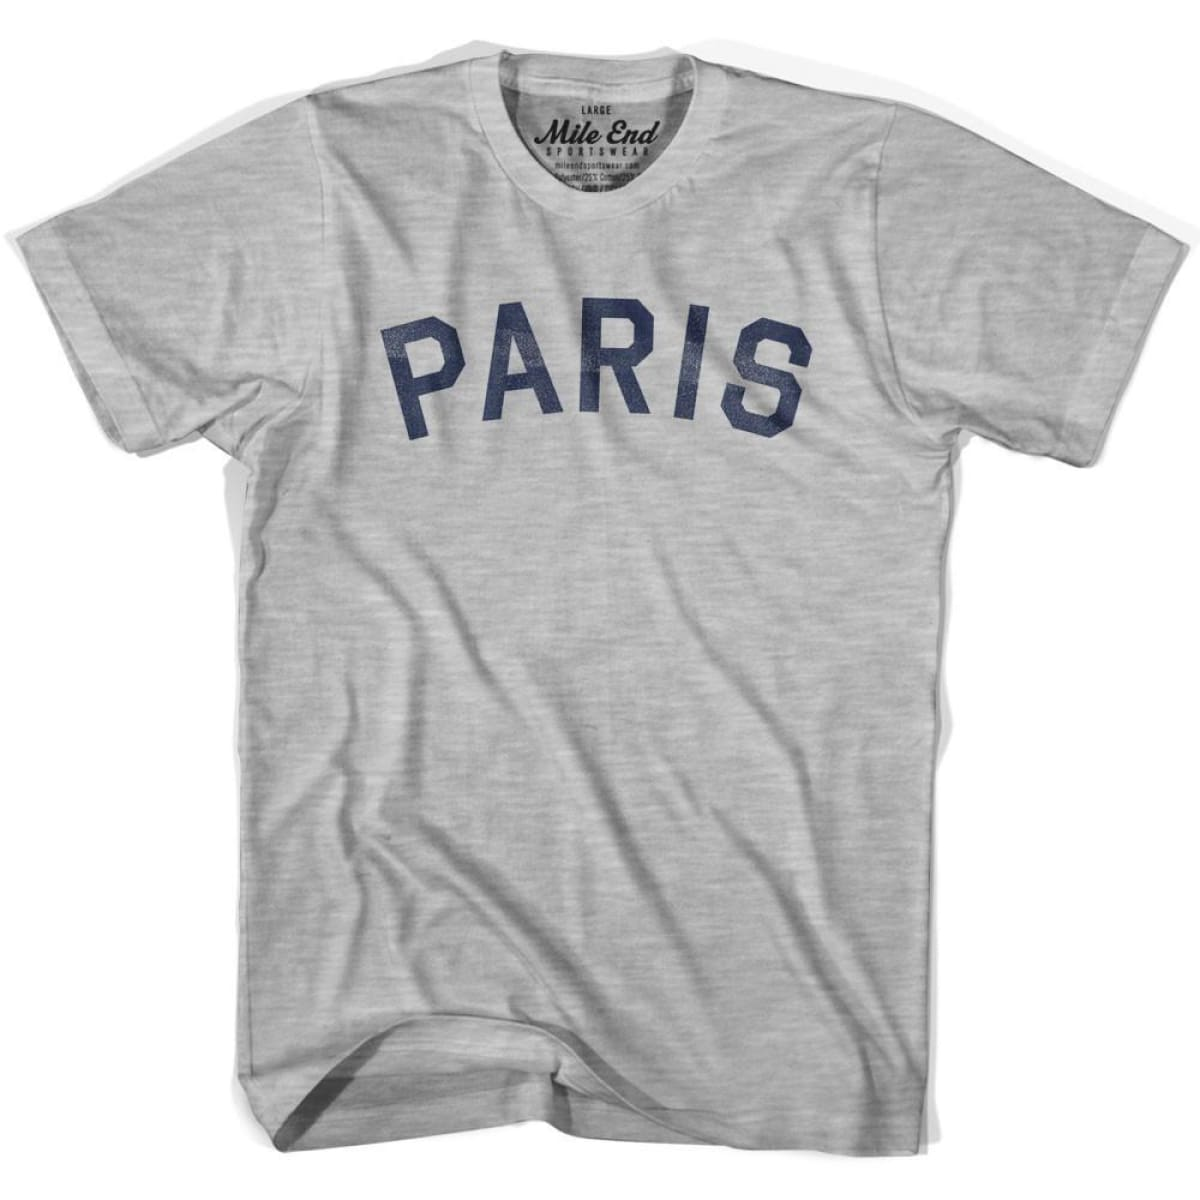 Paris City Vintage T-shirt - Grey Heather / Youth X-Small - Mile End City